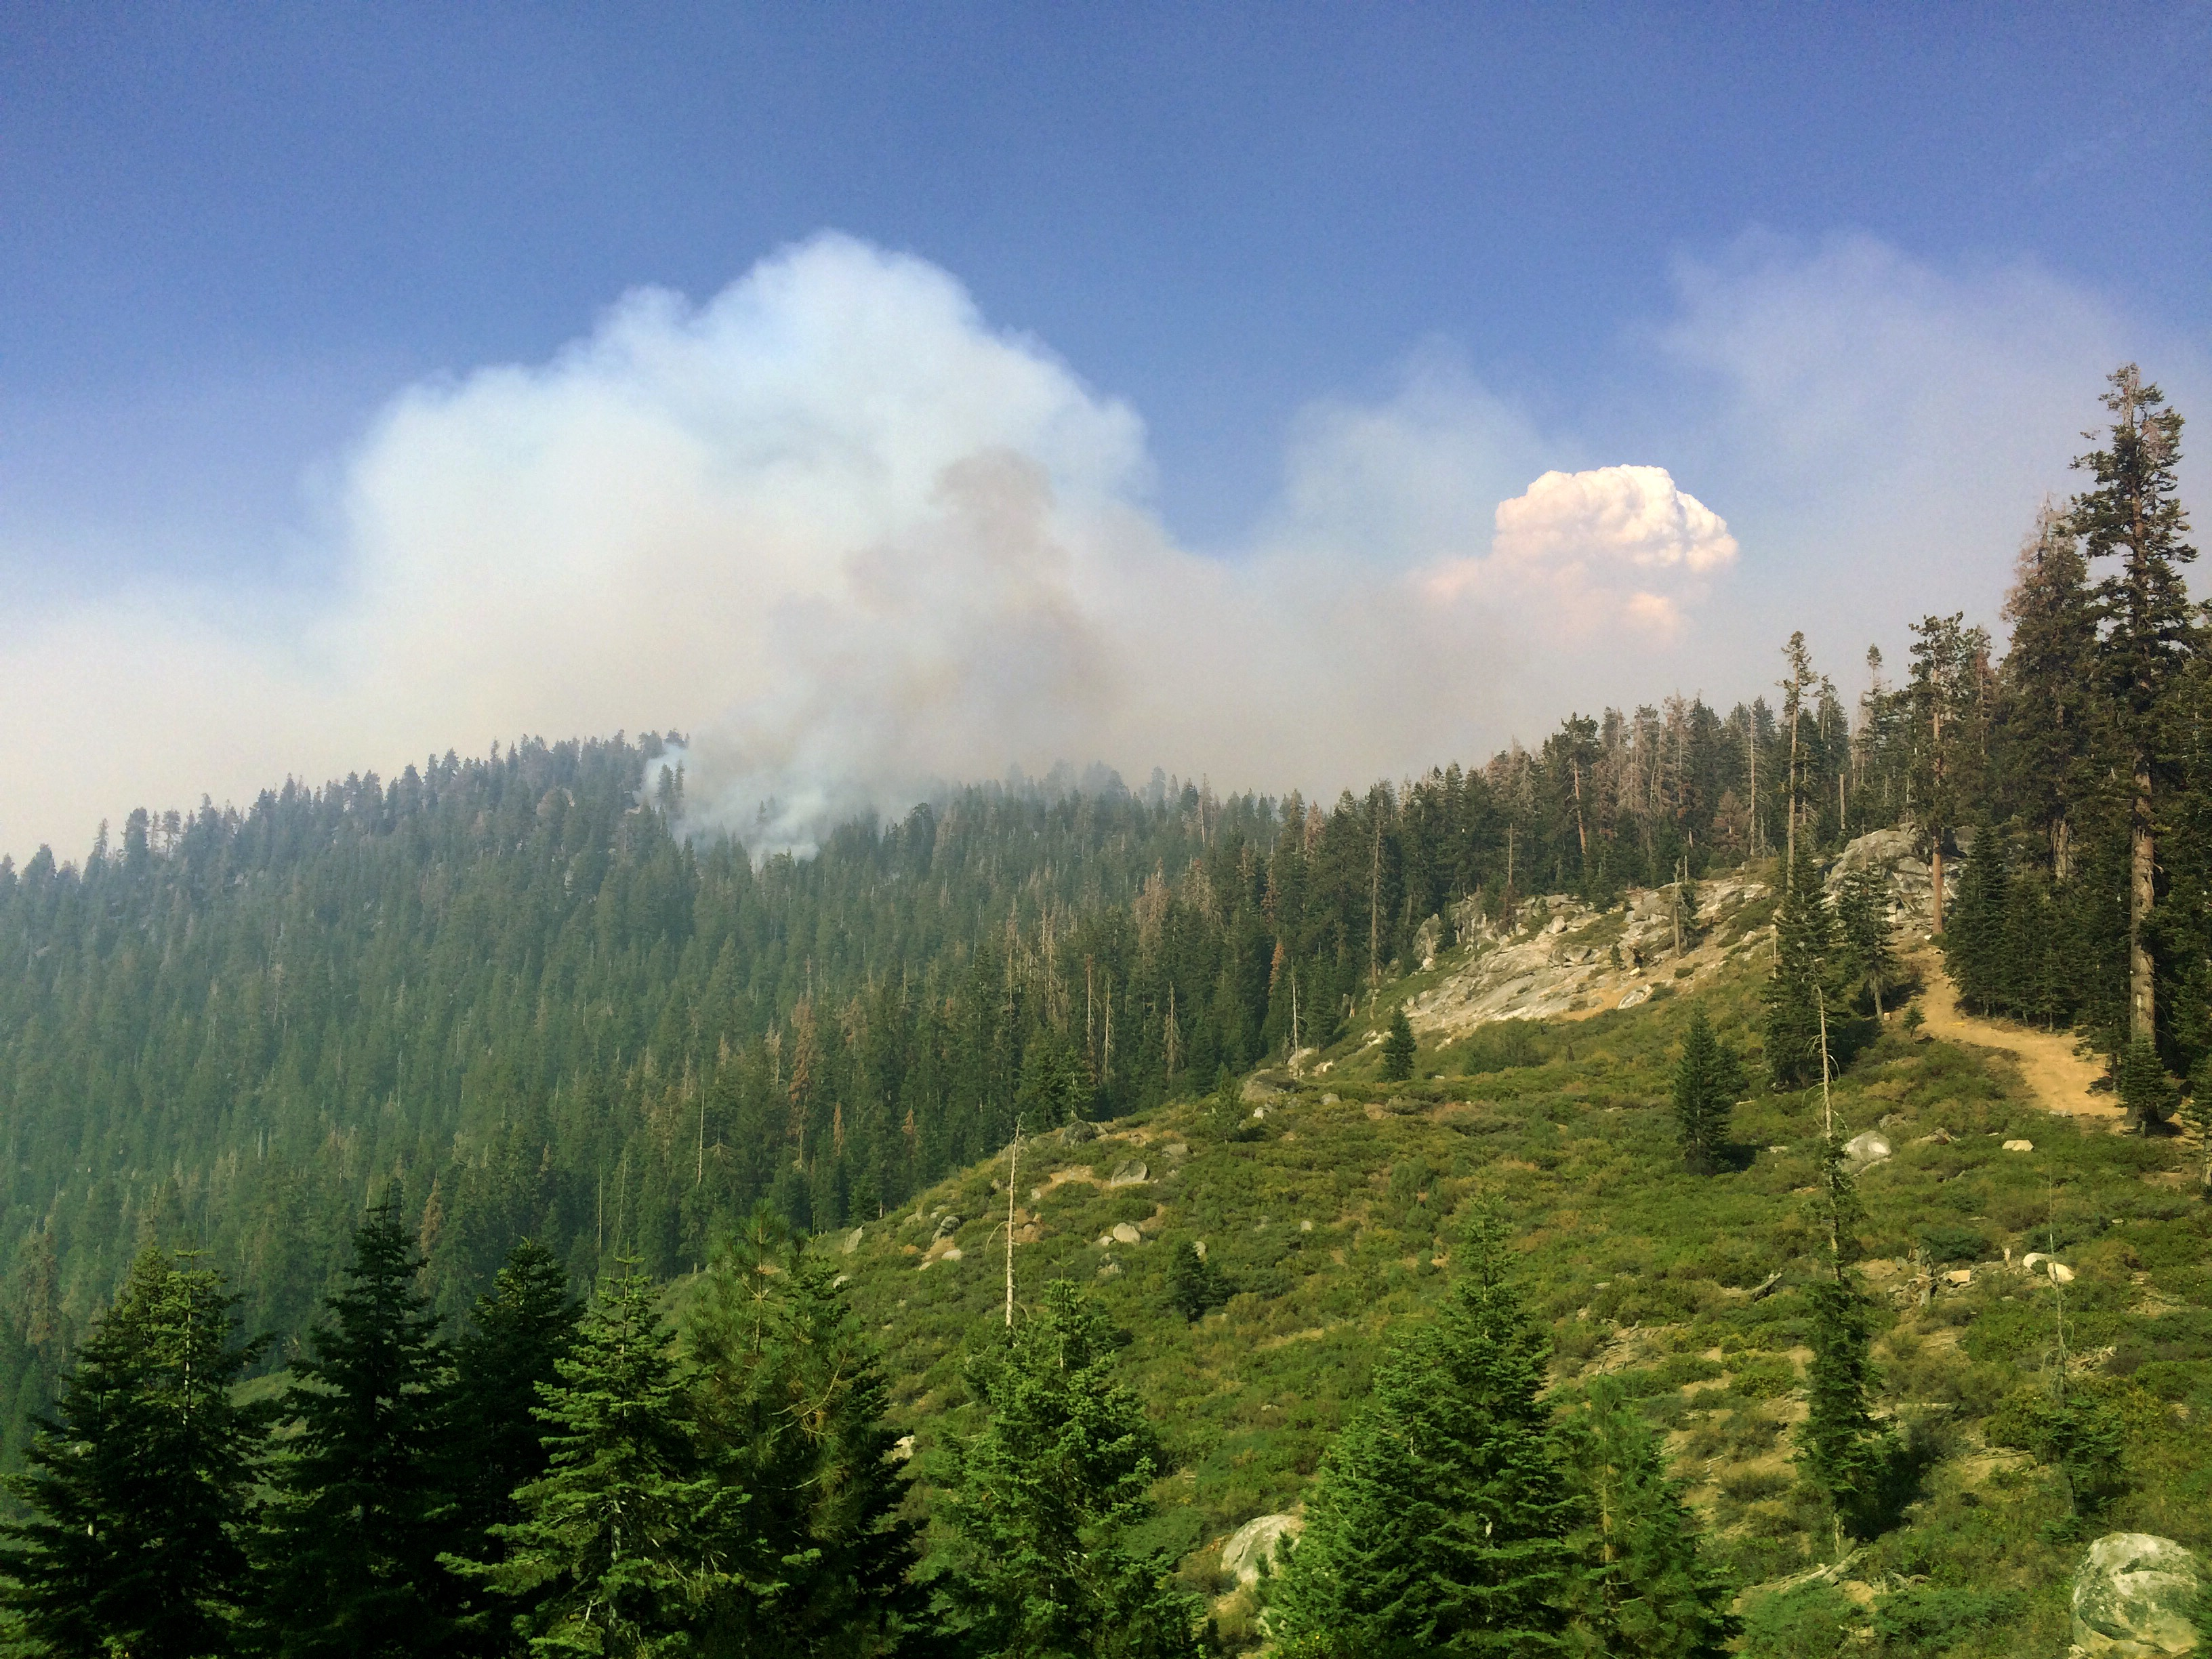 Smoke from wildland fire taken by ExpertVoice Expert Gregg Boydston